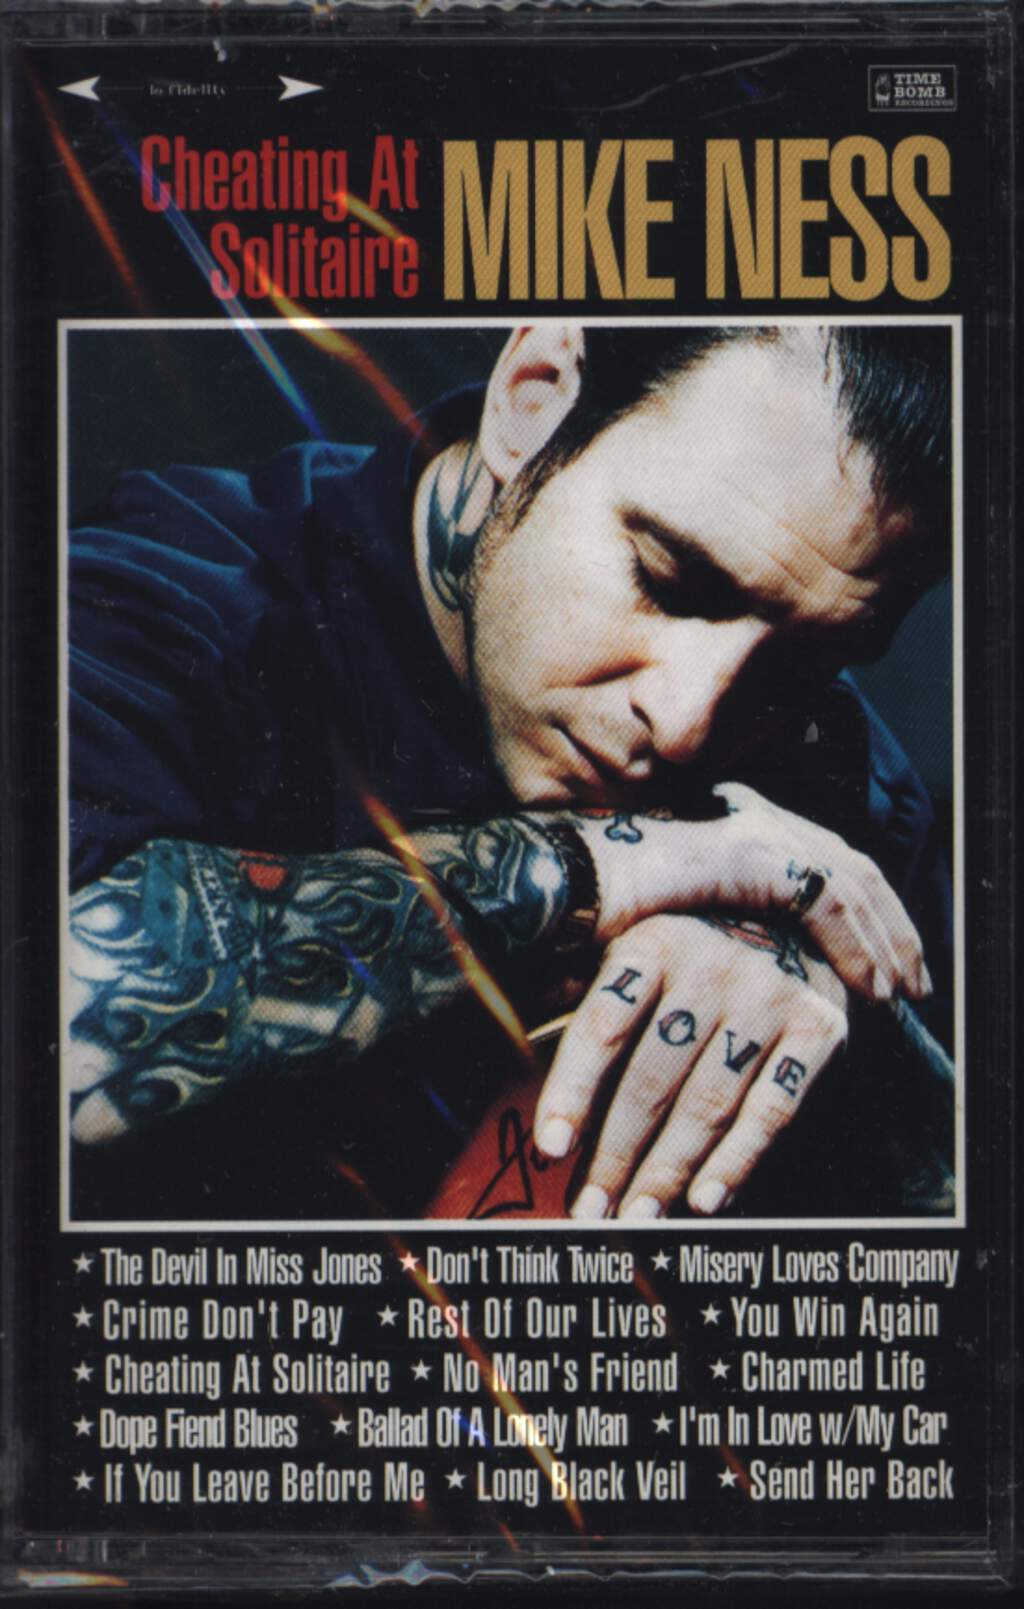 Mike Ness: Cheating At Solitaire, Compact Cassette